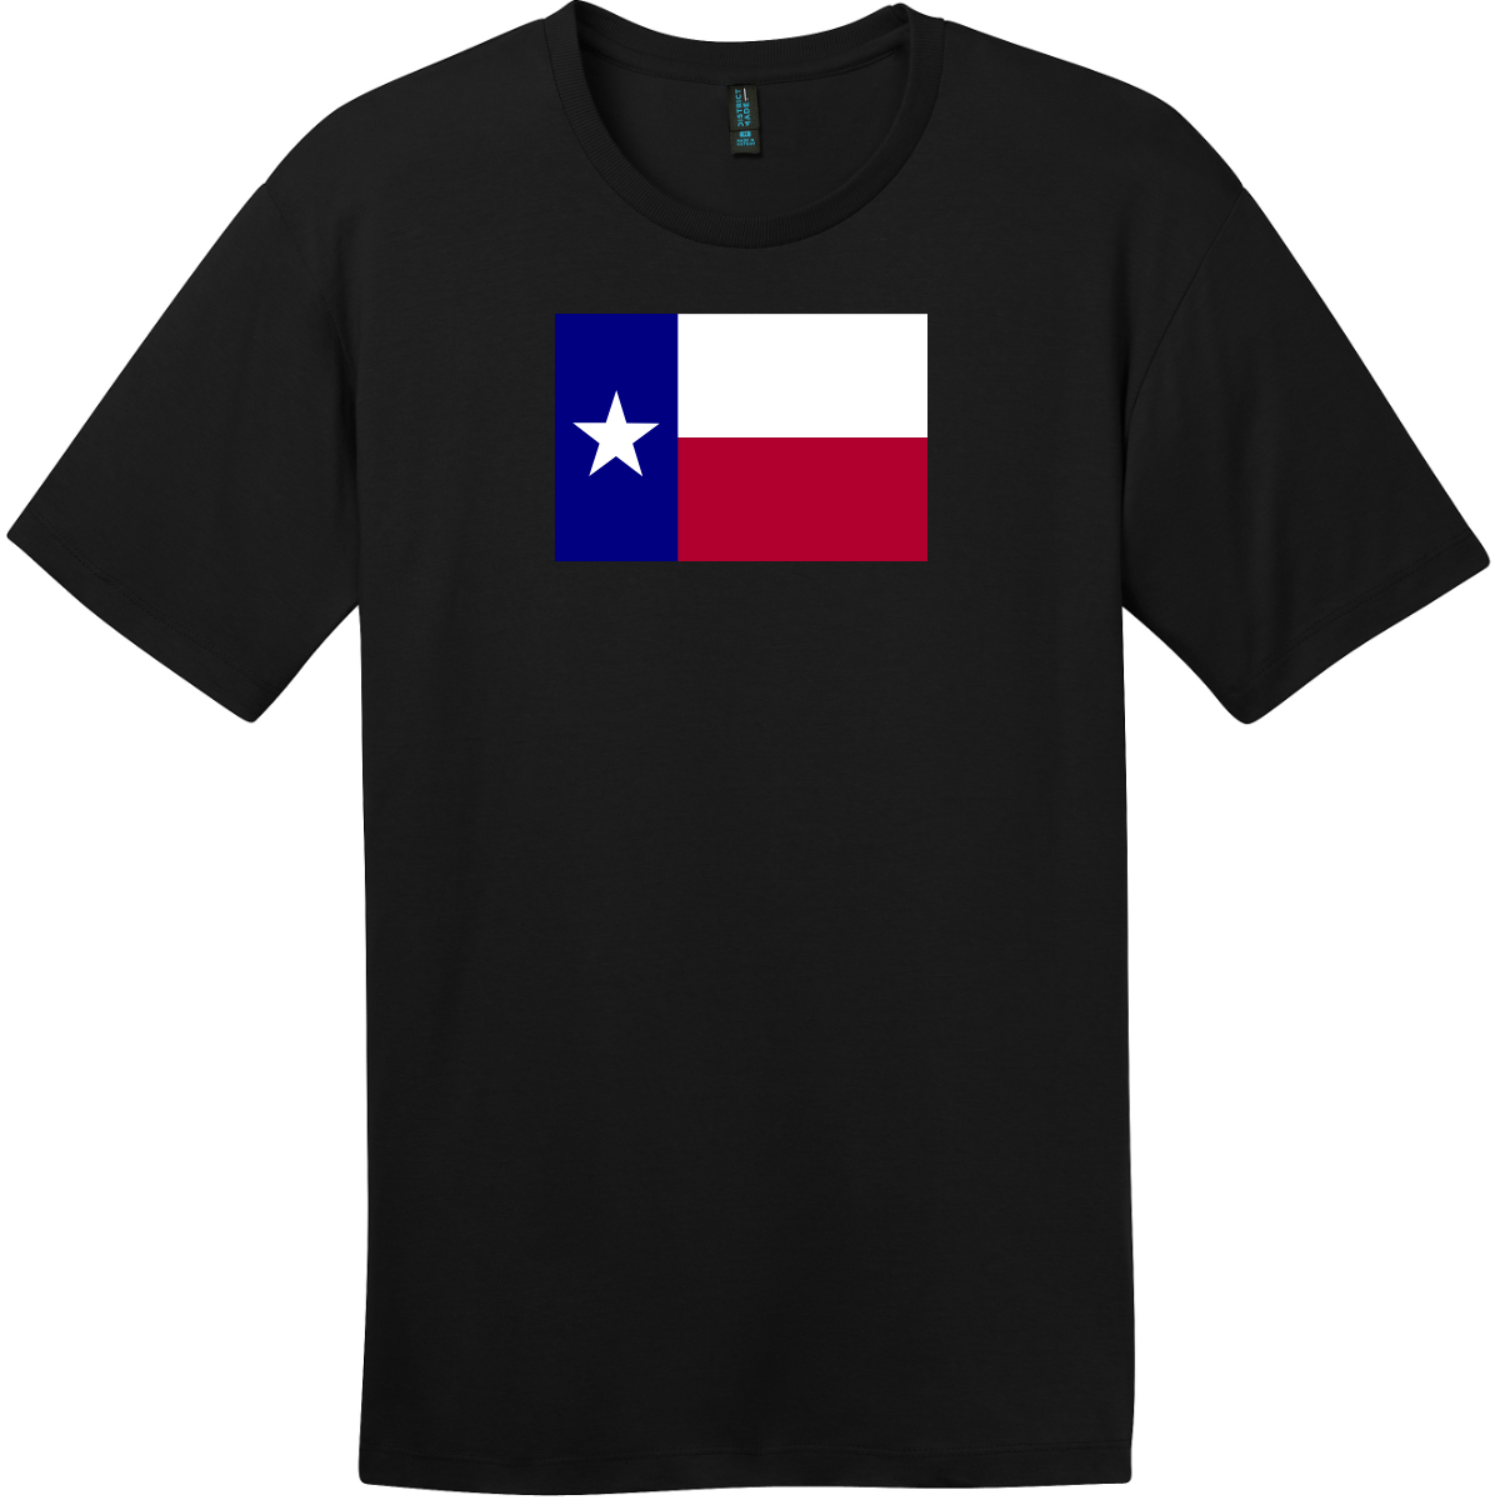 Texas Lone Star State Flag T-Shirt Jet Black District Perfect Weight Tee DT104